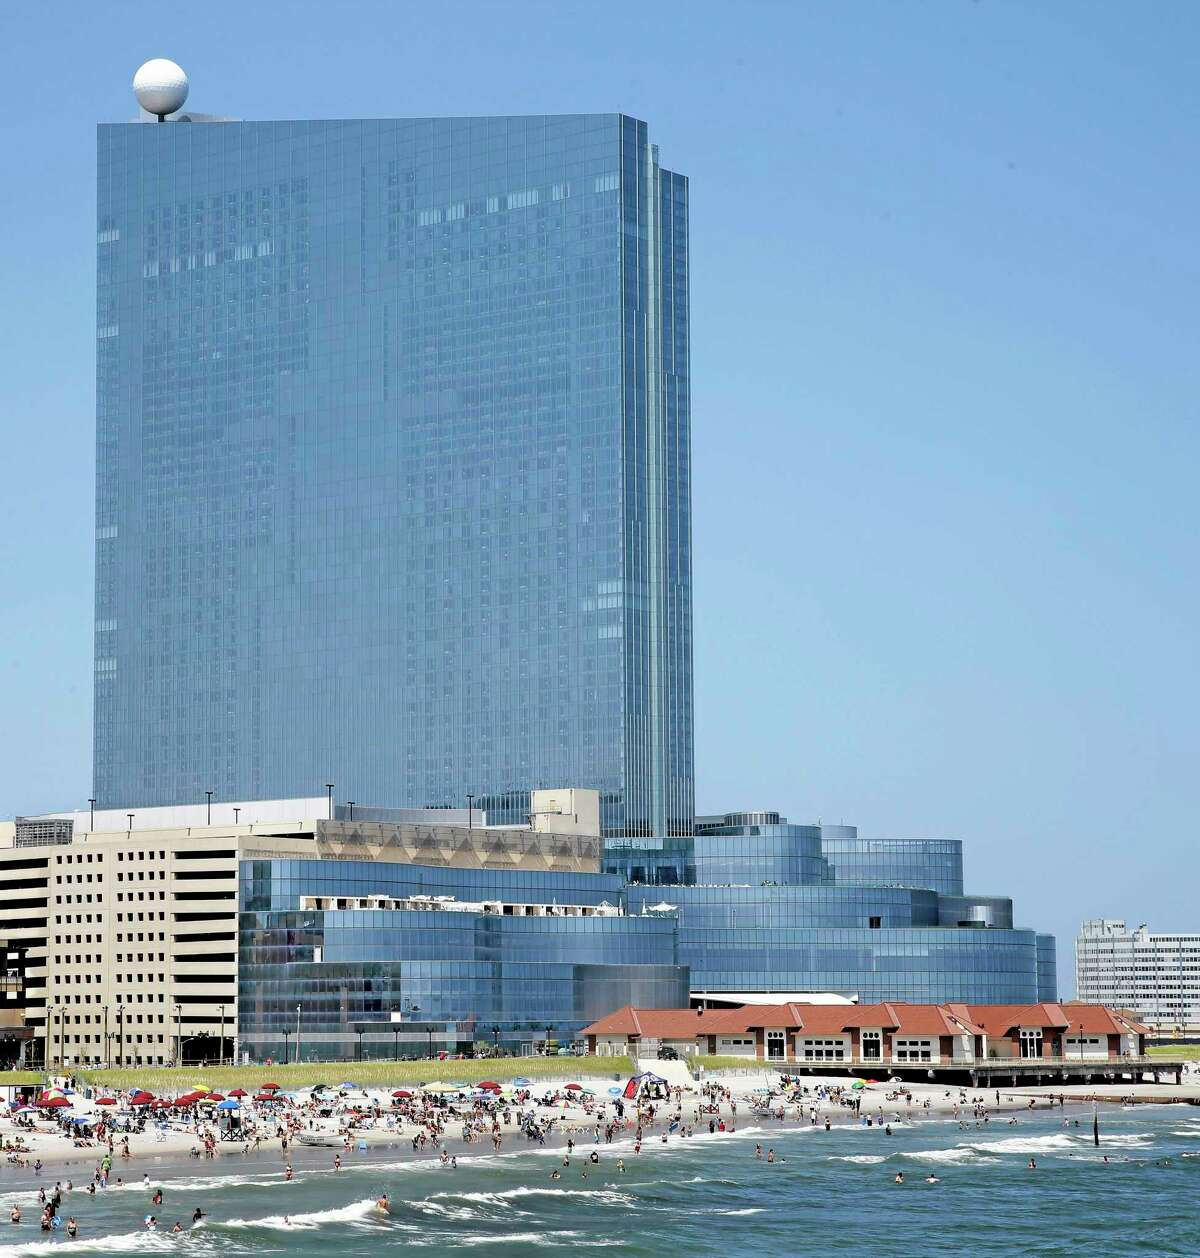 In this Wednesday July 23, 2014 photograph, the Revel Casino Hotel is seen in Atlantic City, N.J. The Revel Casino Hotel will close its doors on Sept. 10, 2014 after failing to find a buyer in bankruptcy court, company officials announced Tuesday, Aug. 12, 2014. (AP Photo/Mel Evans)